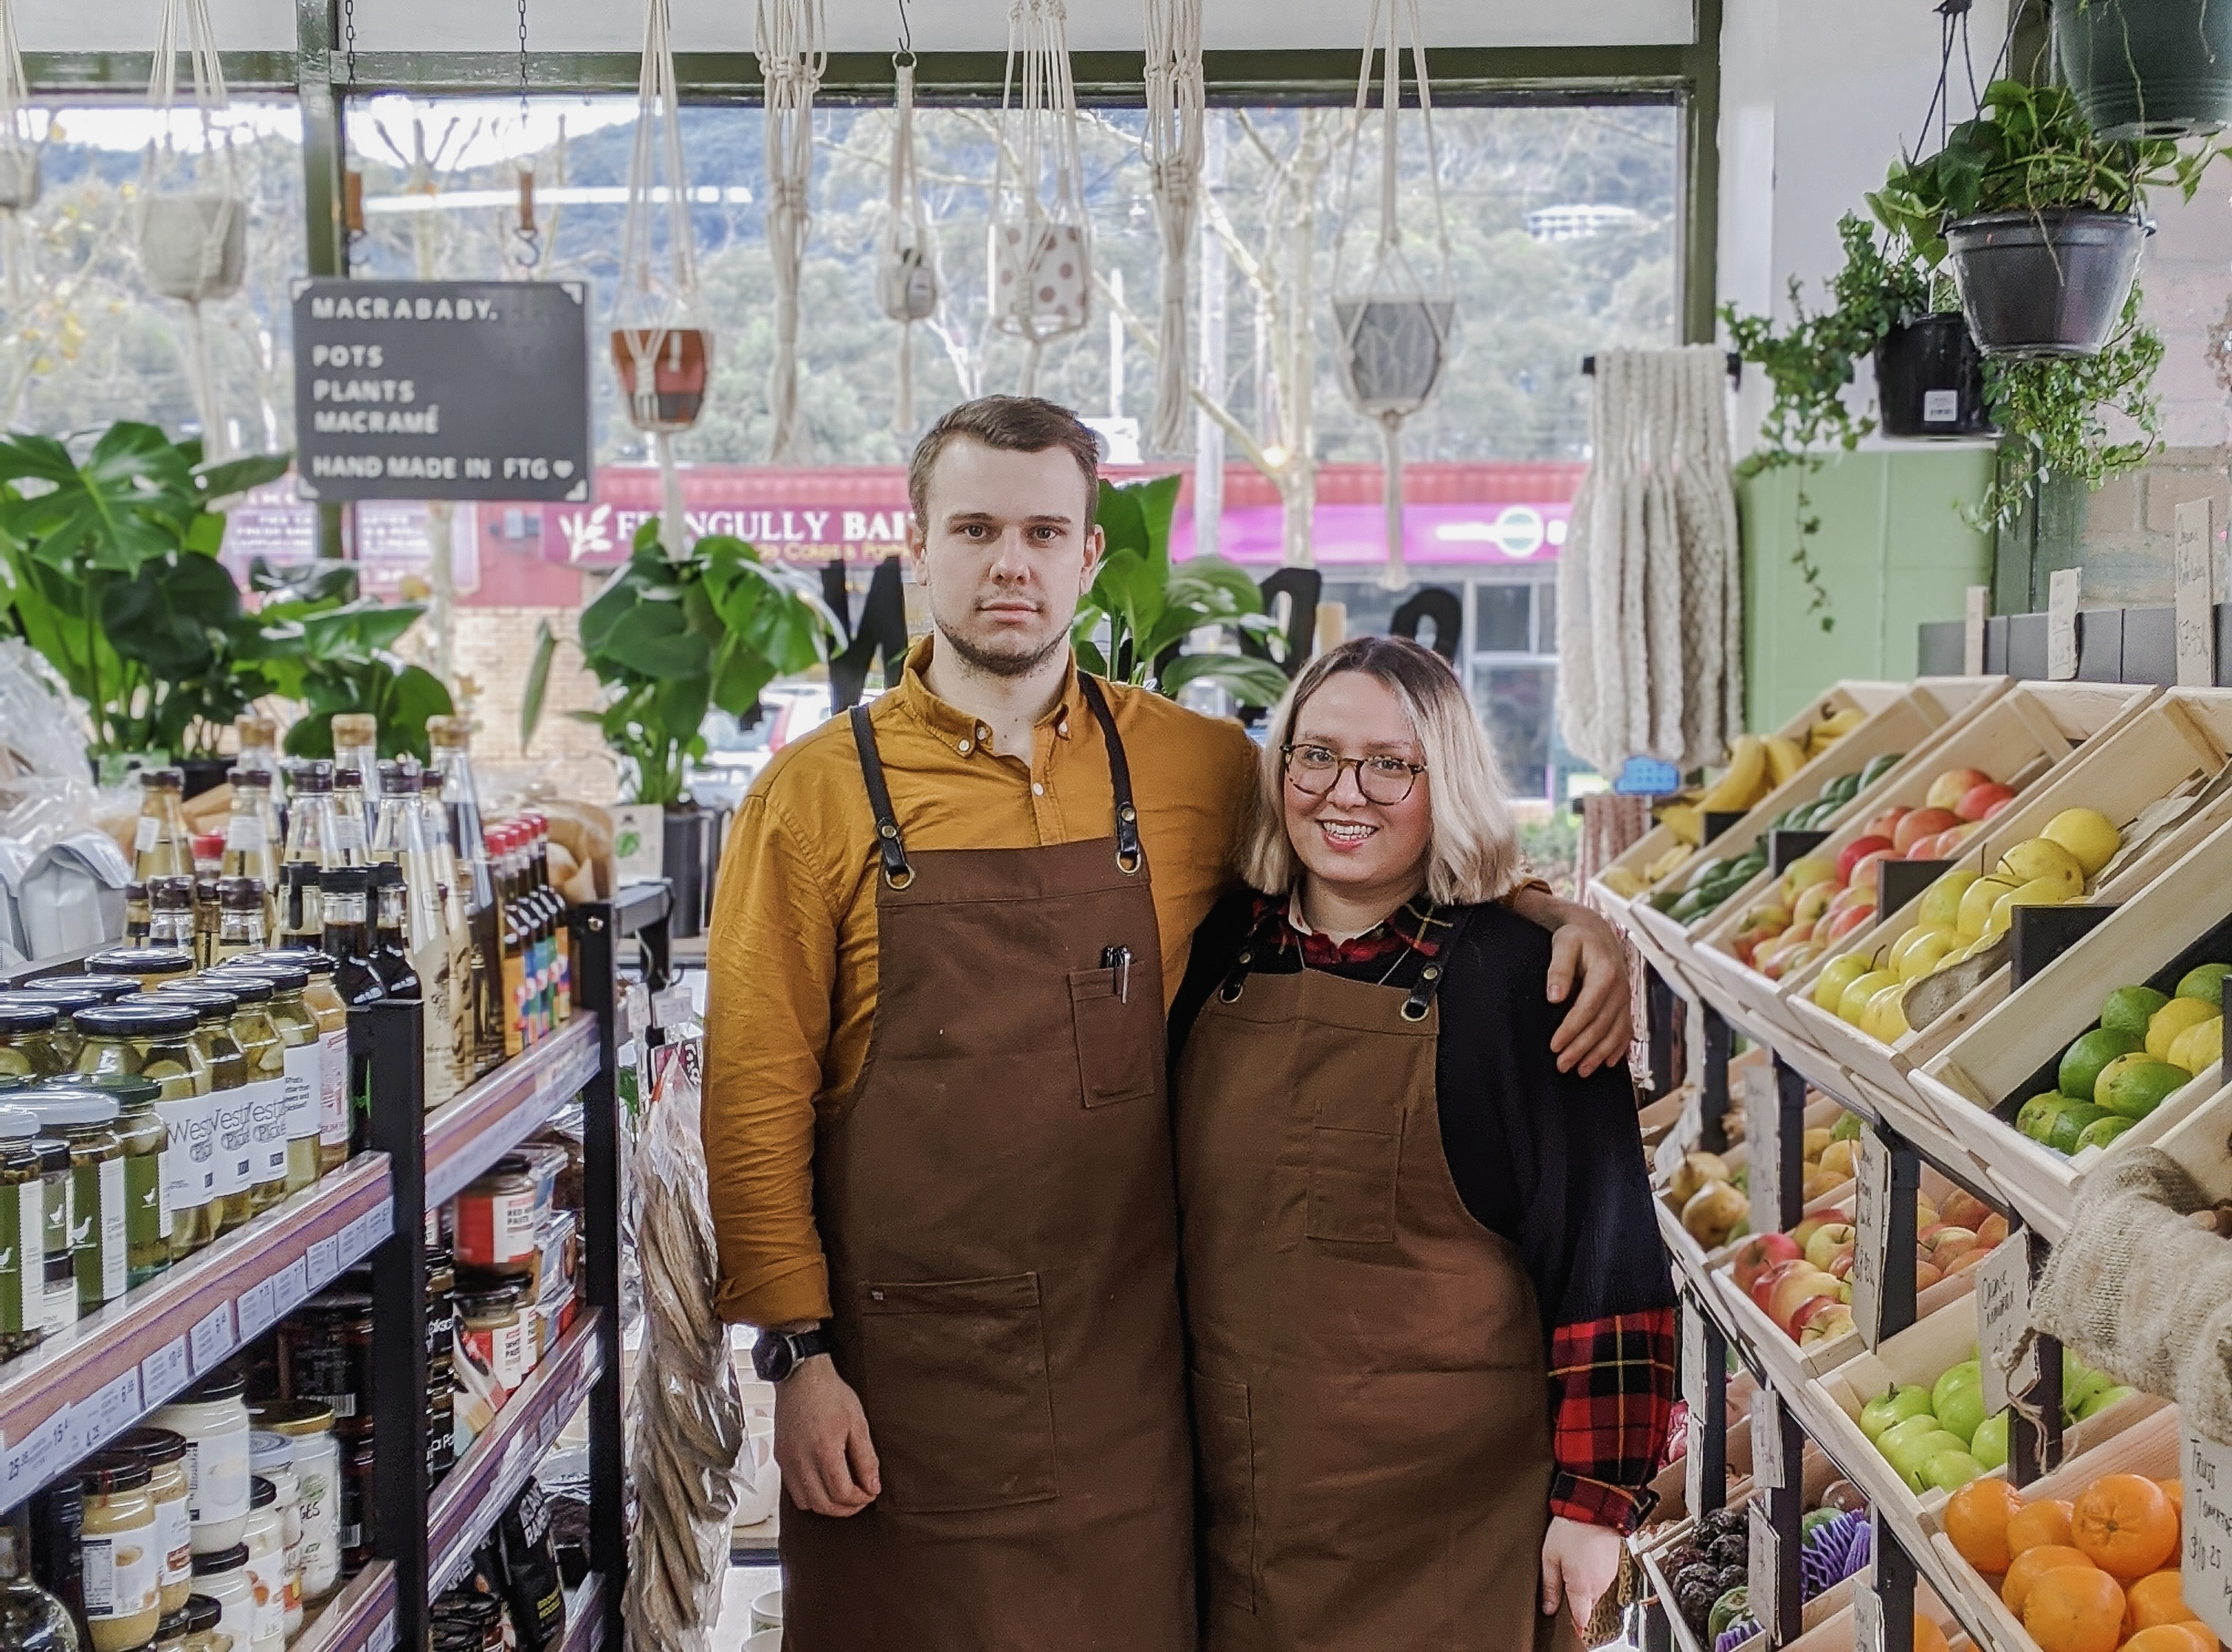 The newest addition to Station Street – an organic grocer